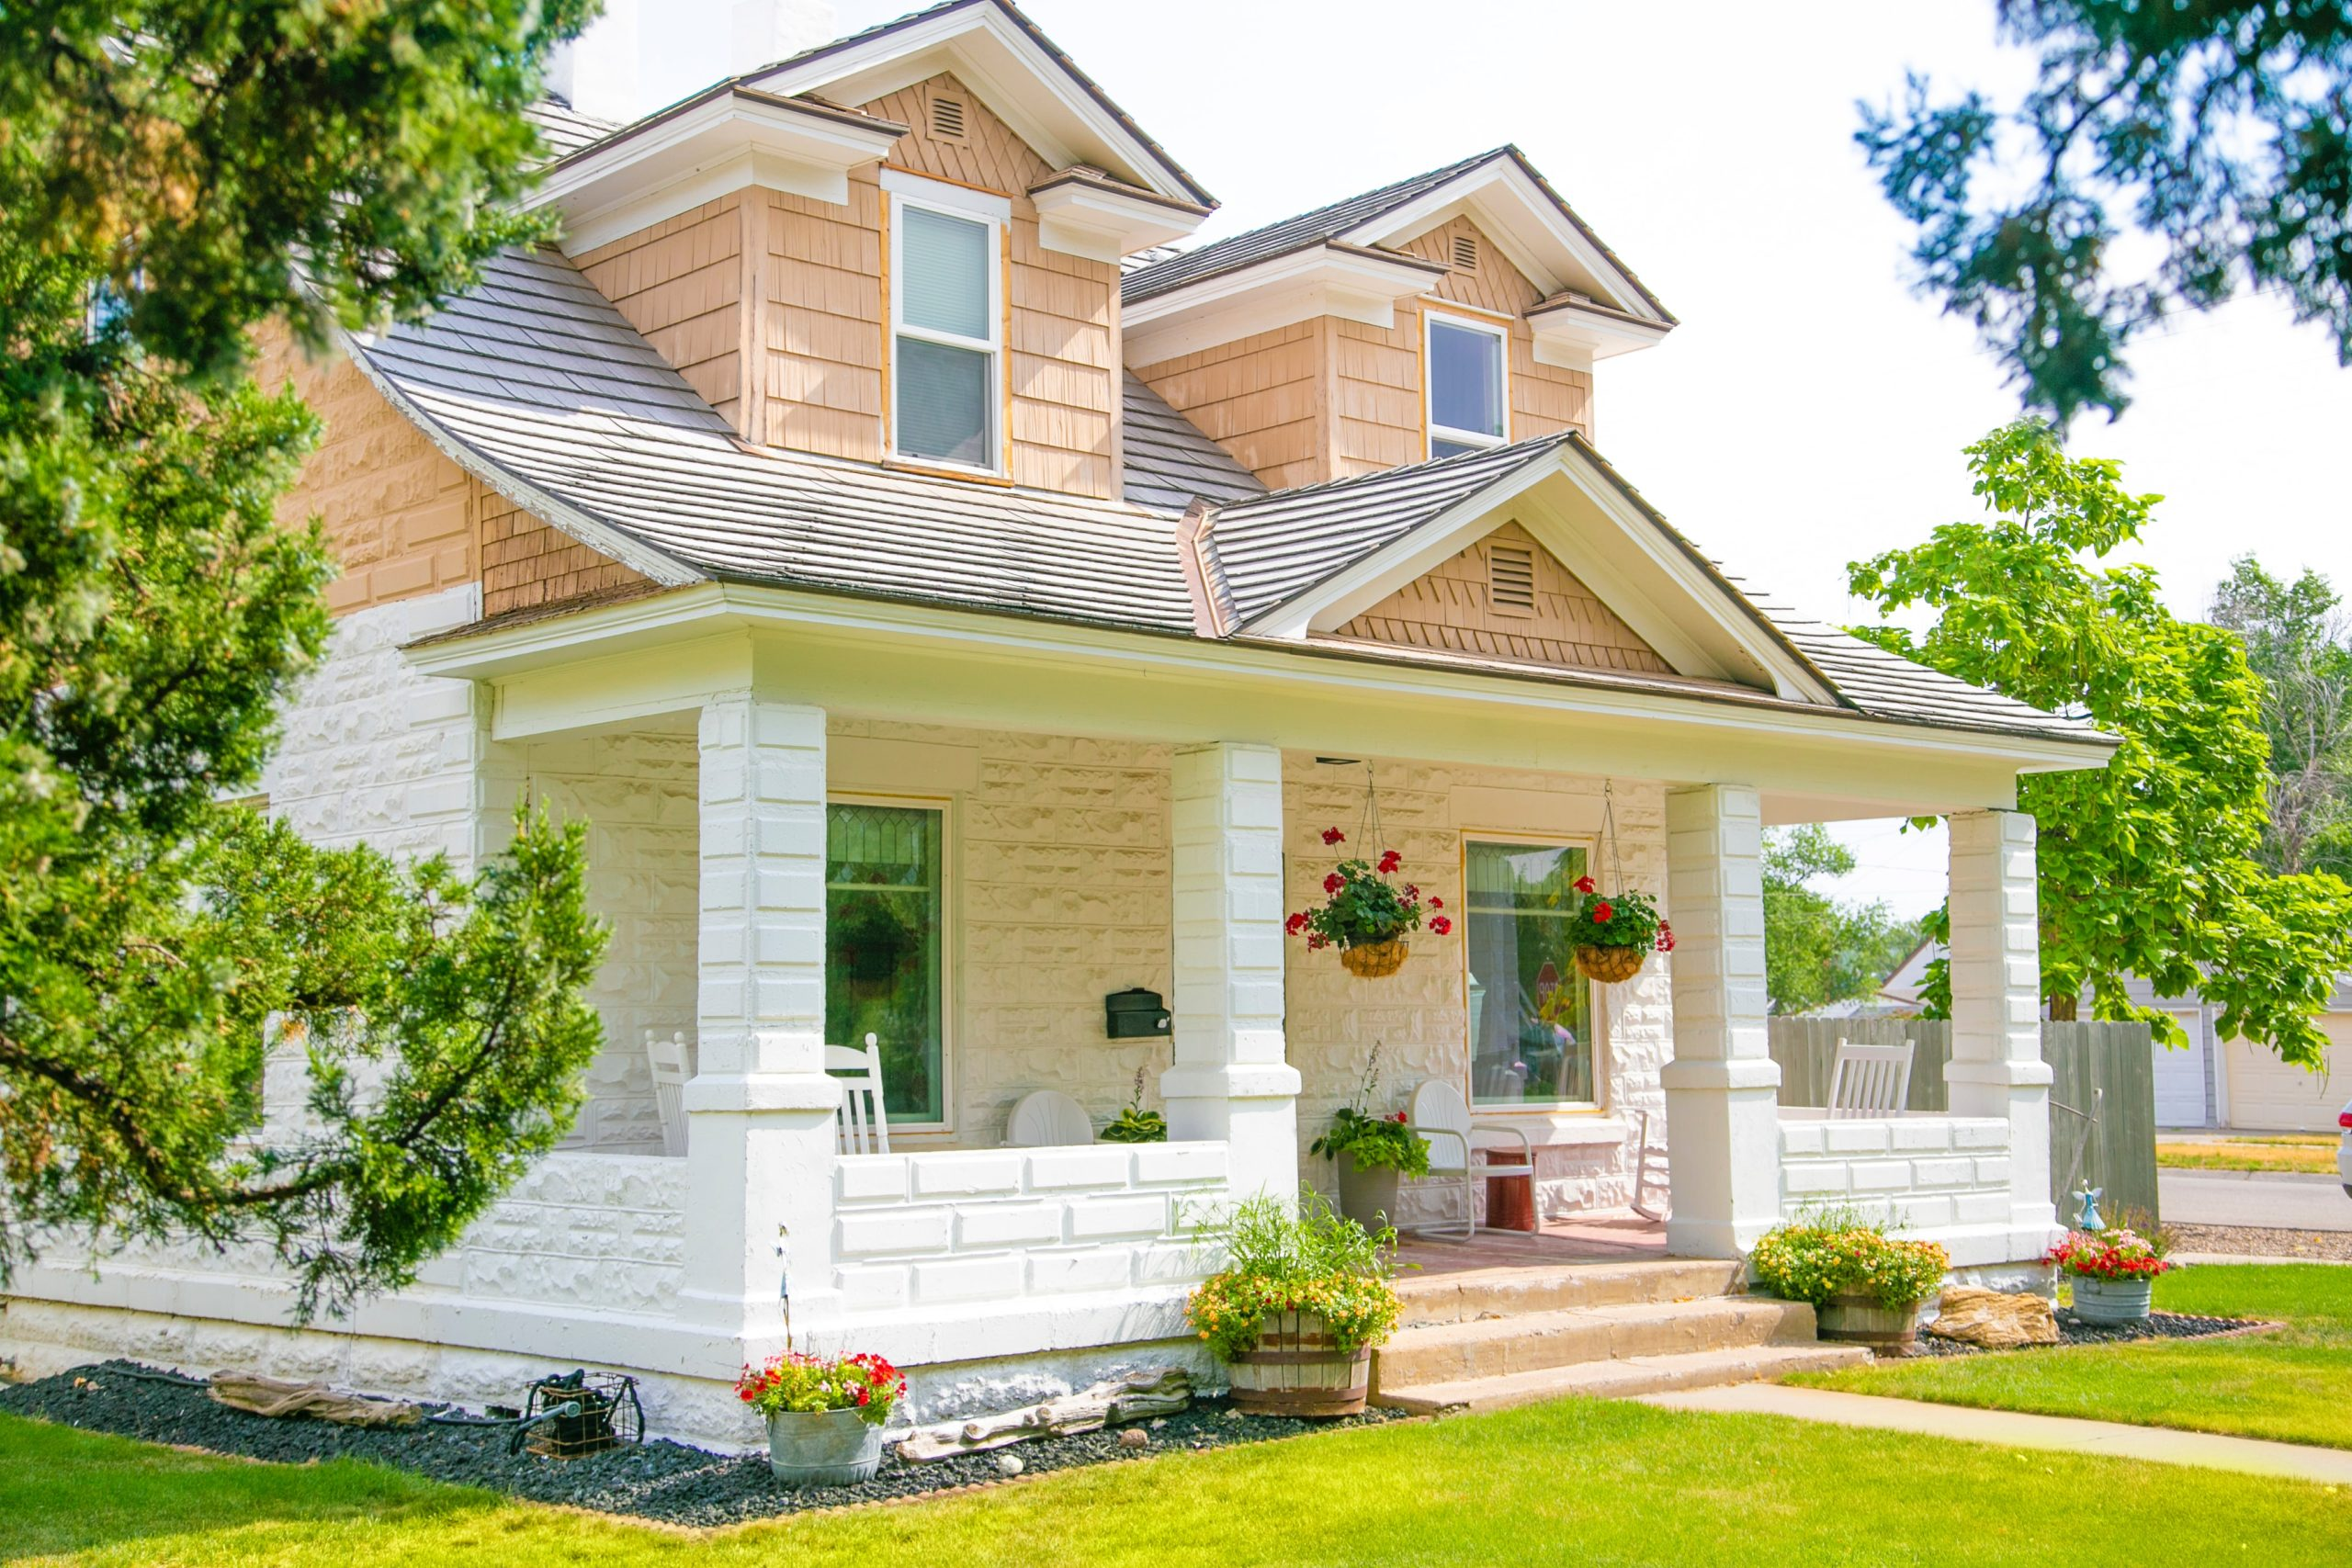 White and tan house that has followed many curb appeal tips